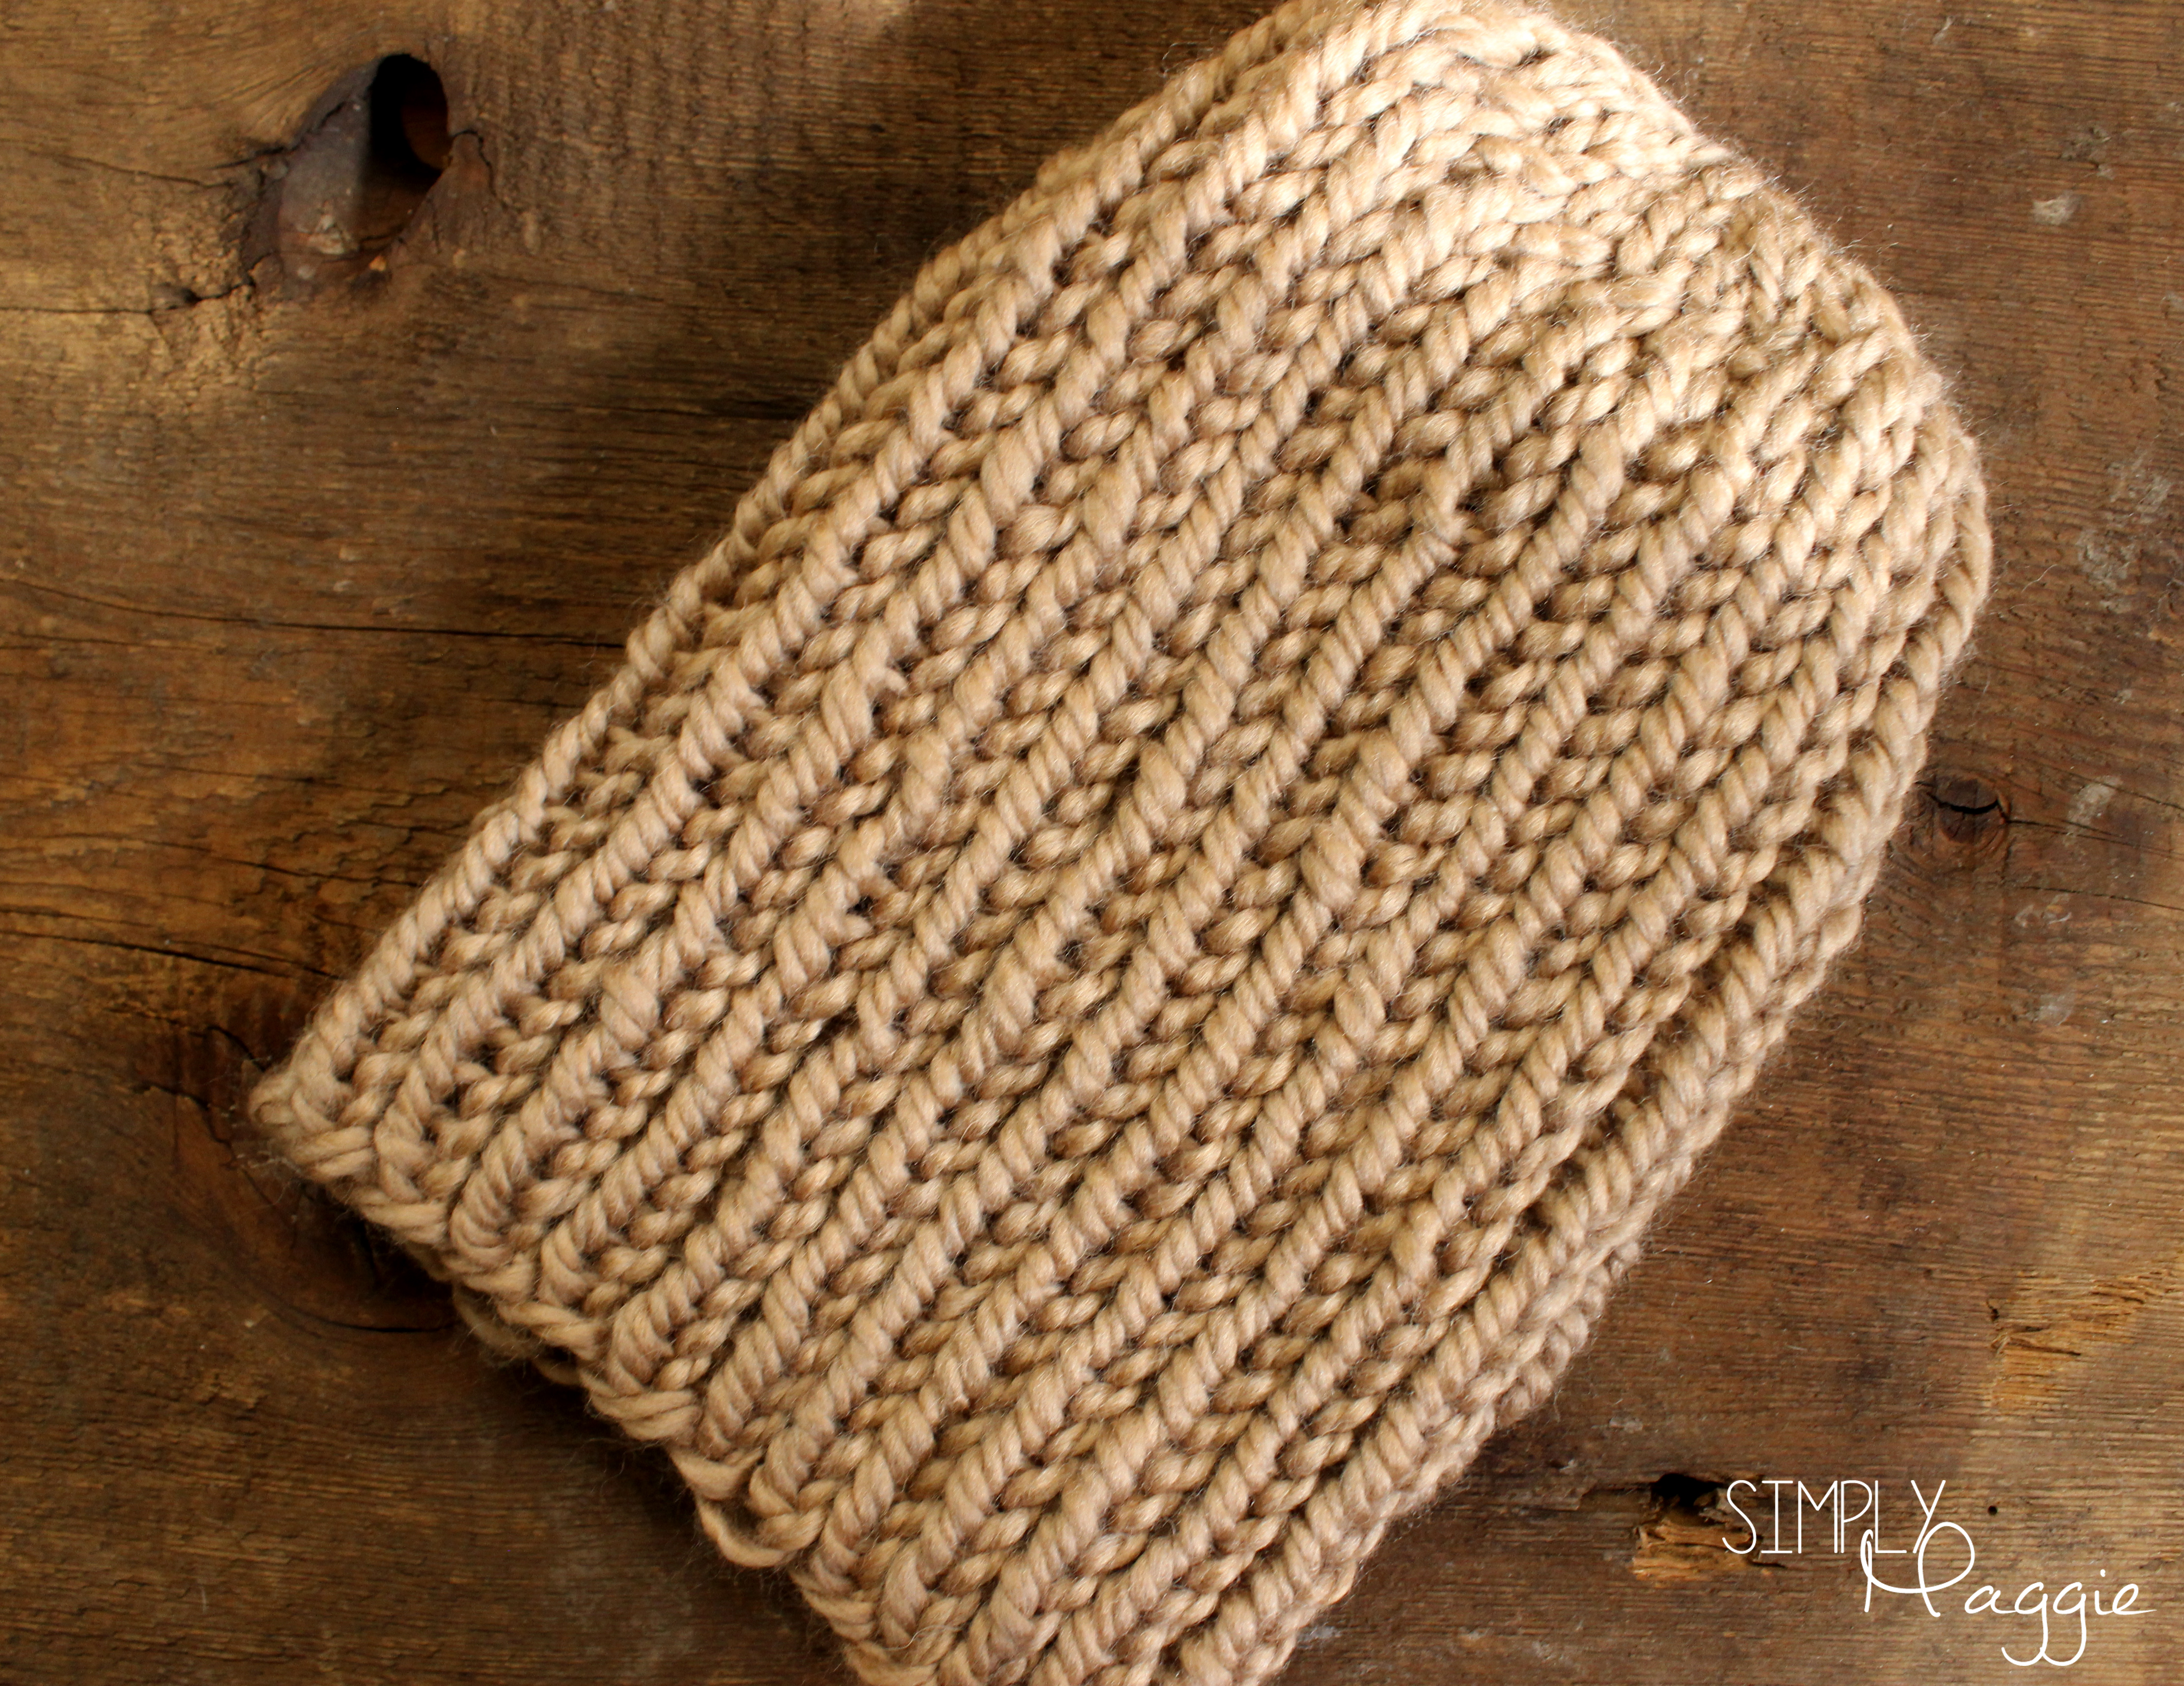 Slouchy Knit Purl Hat SimplyMaggie.com